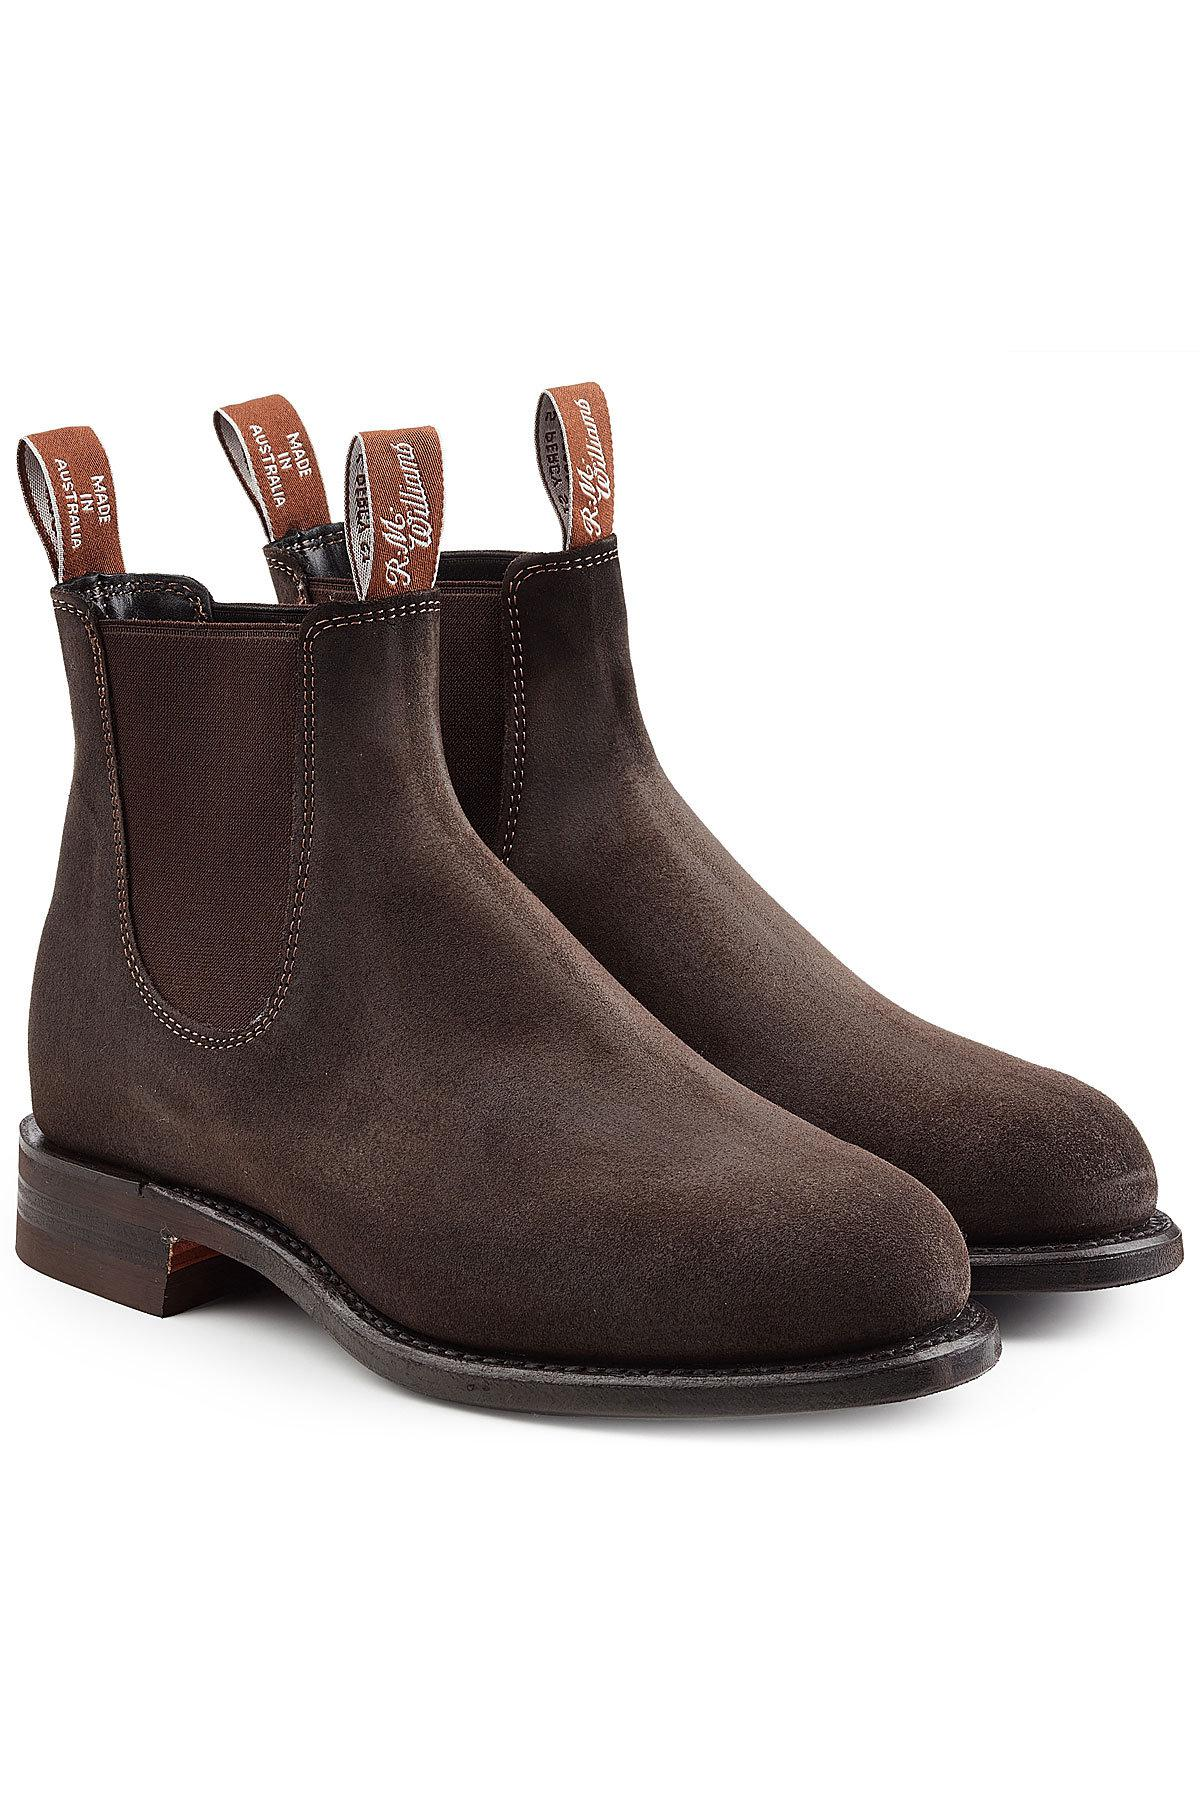 R.M. Williams Comfort Turnout Leather Boots in Brown for ...